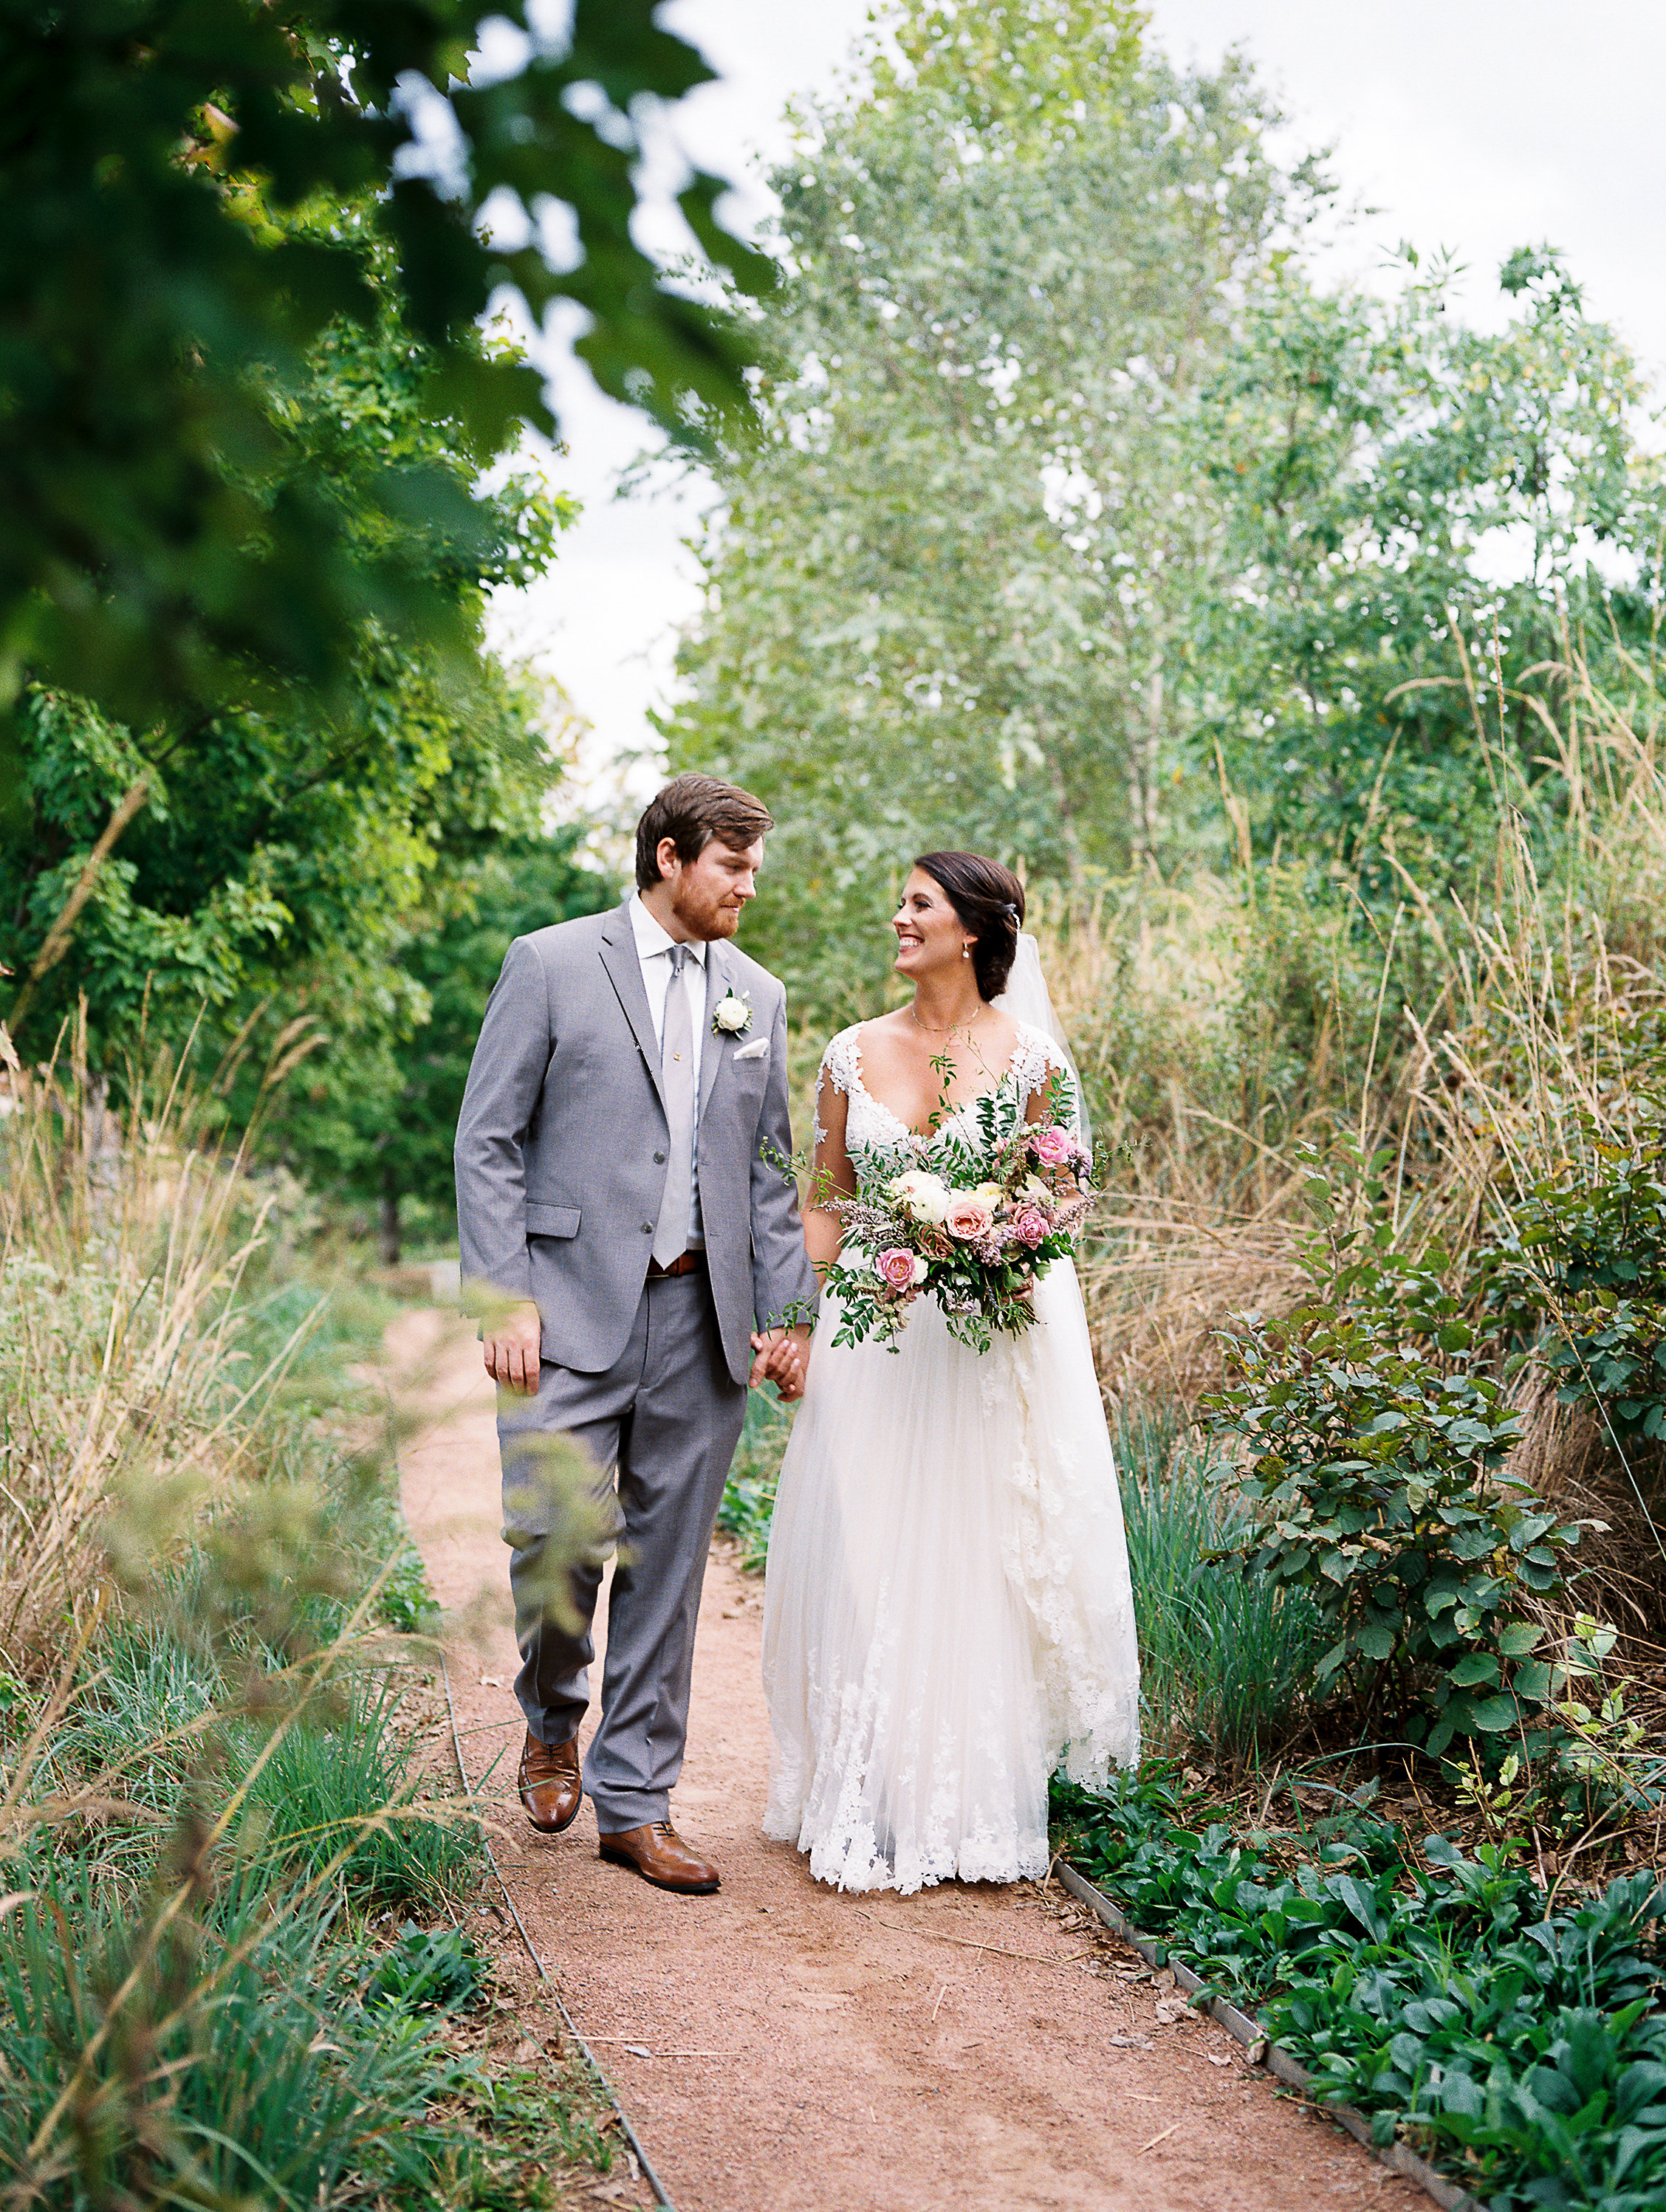 Lush, organic floral design in shades of lavender // Nashville Wedding Florist